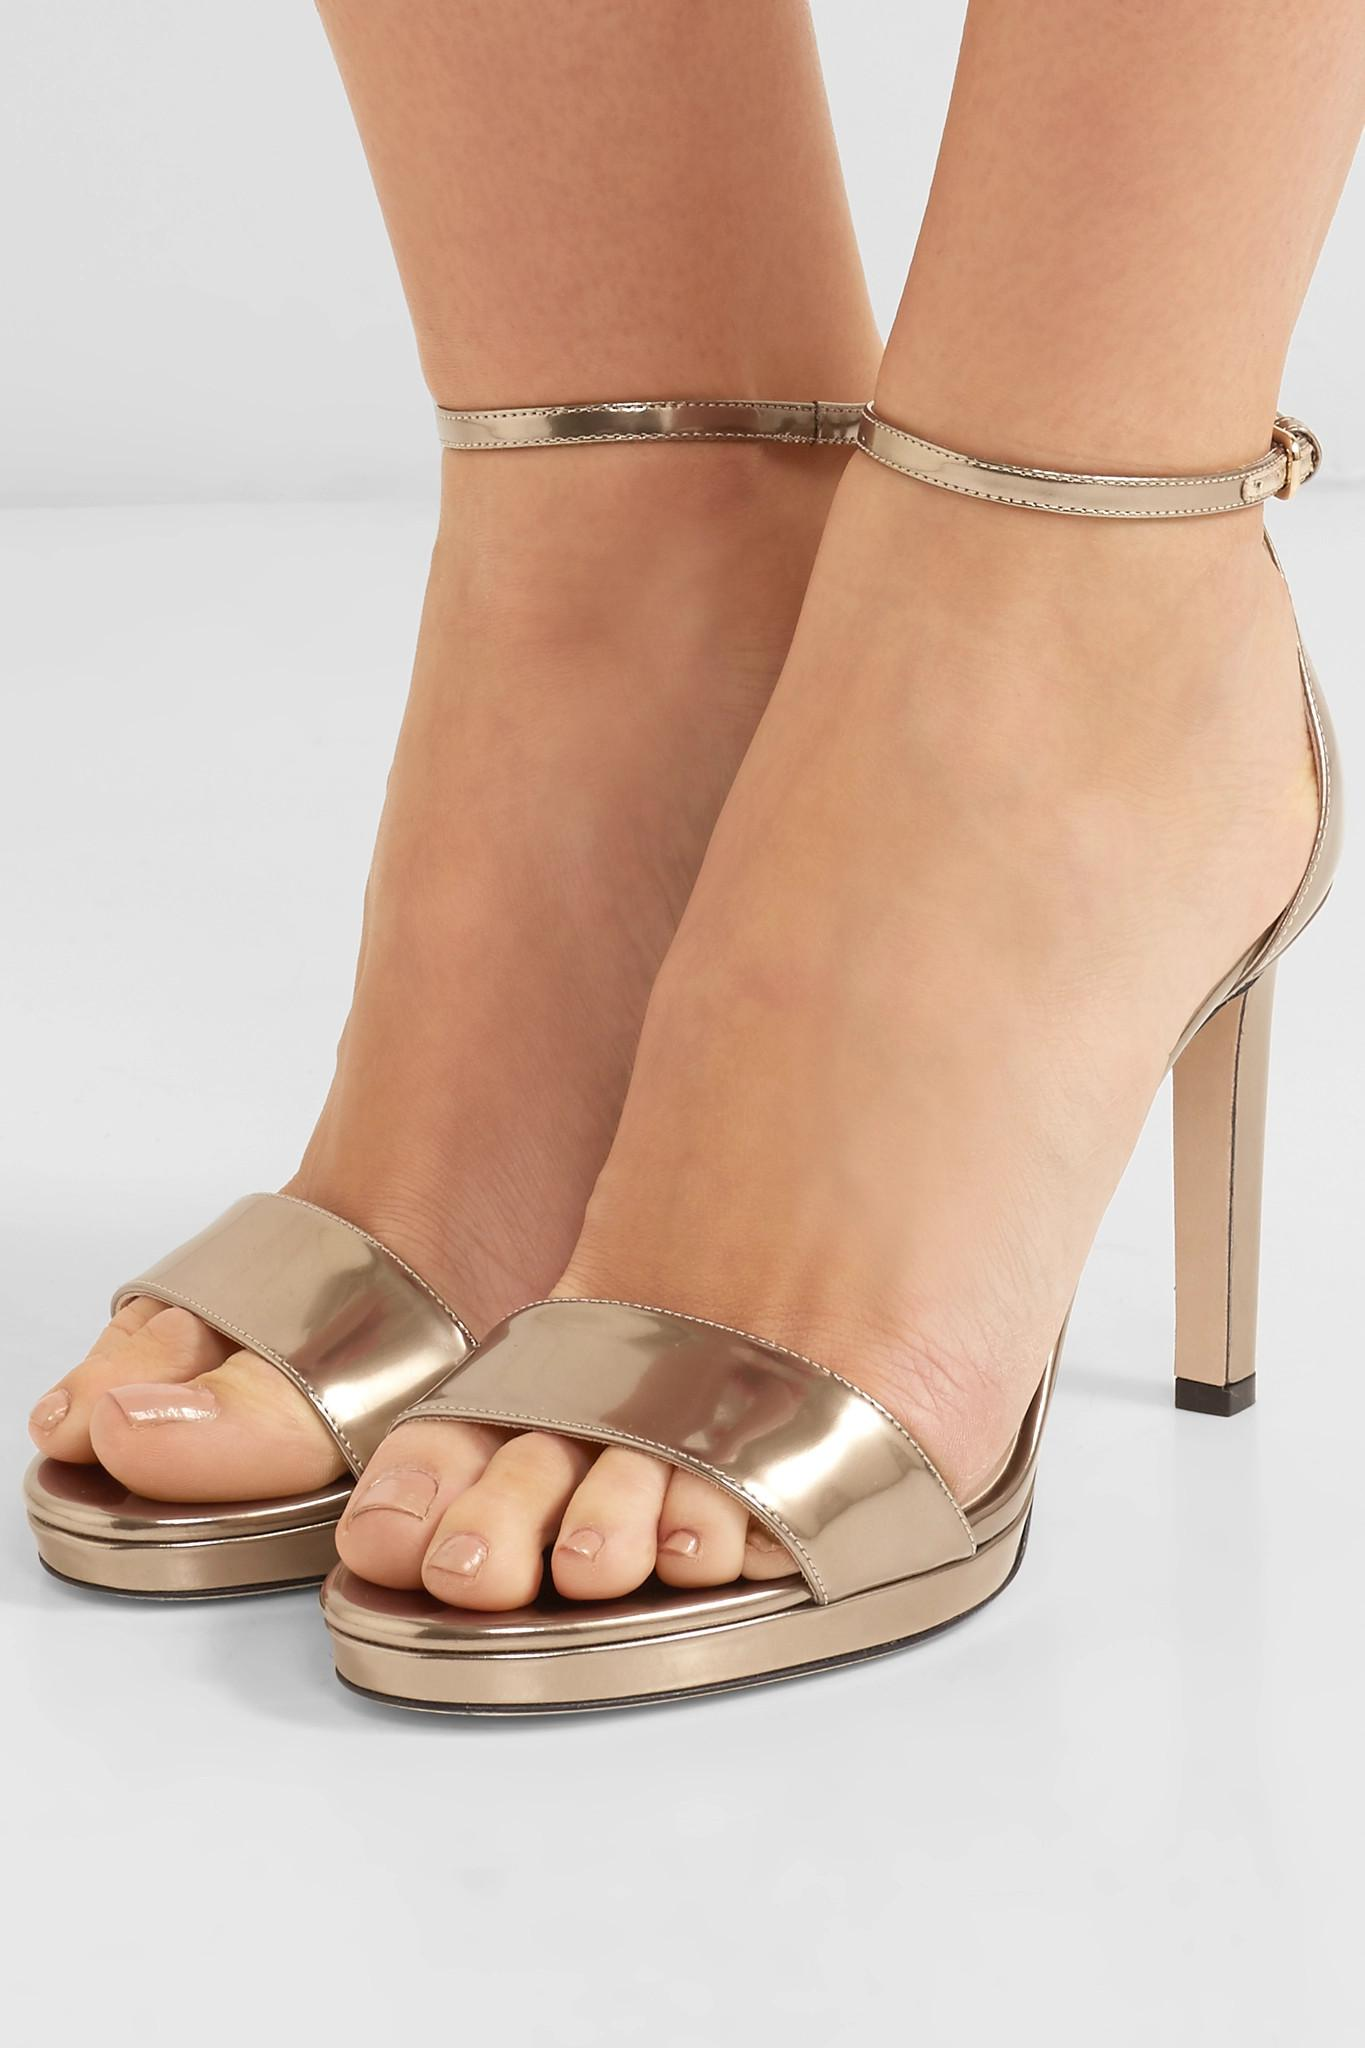 31290d2bbd1 Jimmy Choo - Misty 100 Metallic Leather Platform Sandals - Lyst. View  fullscreen